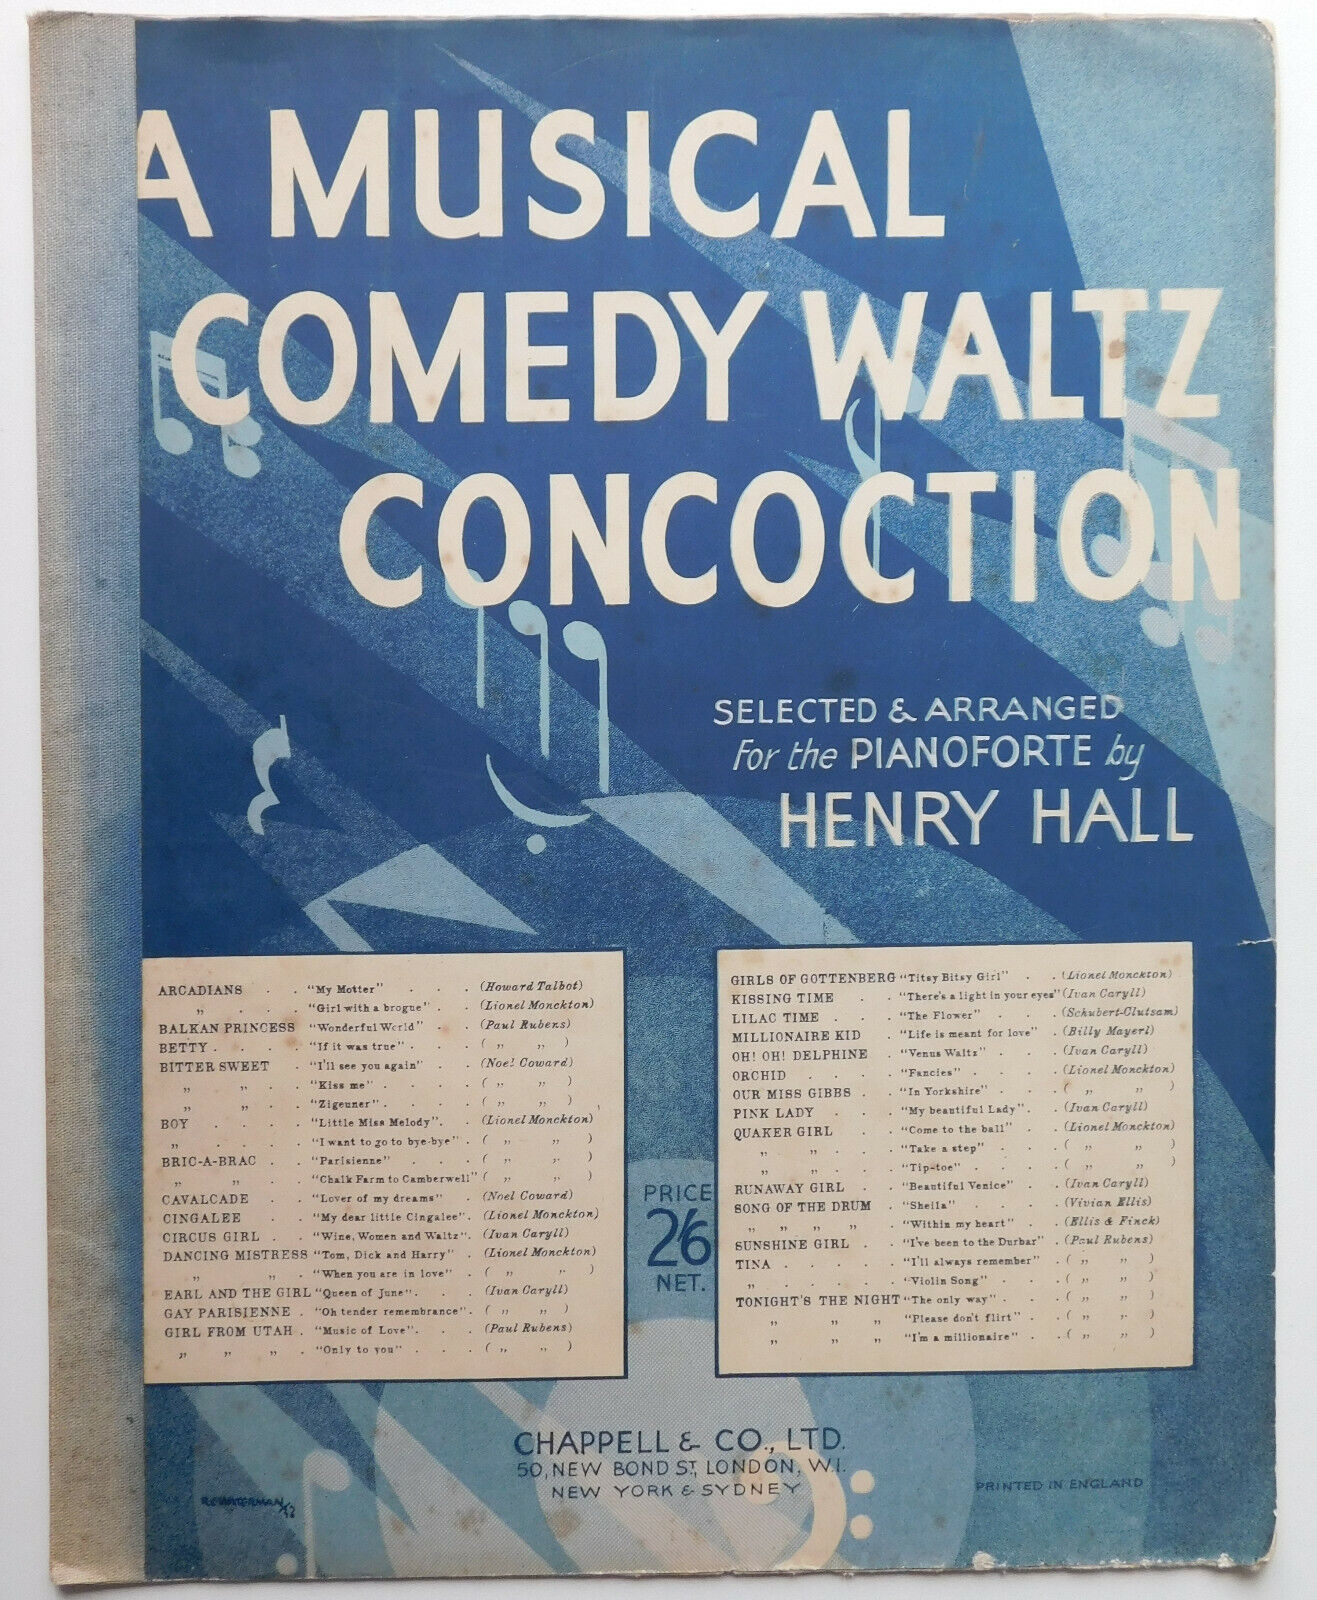 Vintage sheet music piano A Musical Comedy Waltz Concoction 1930s Henry Hall